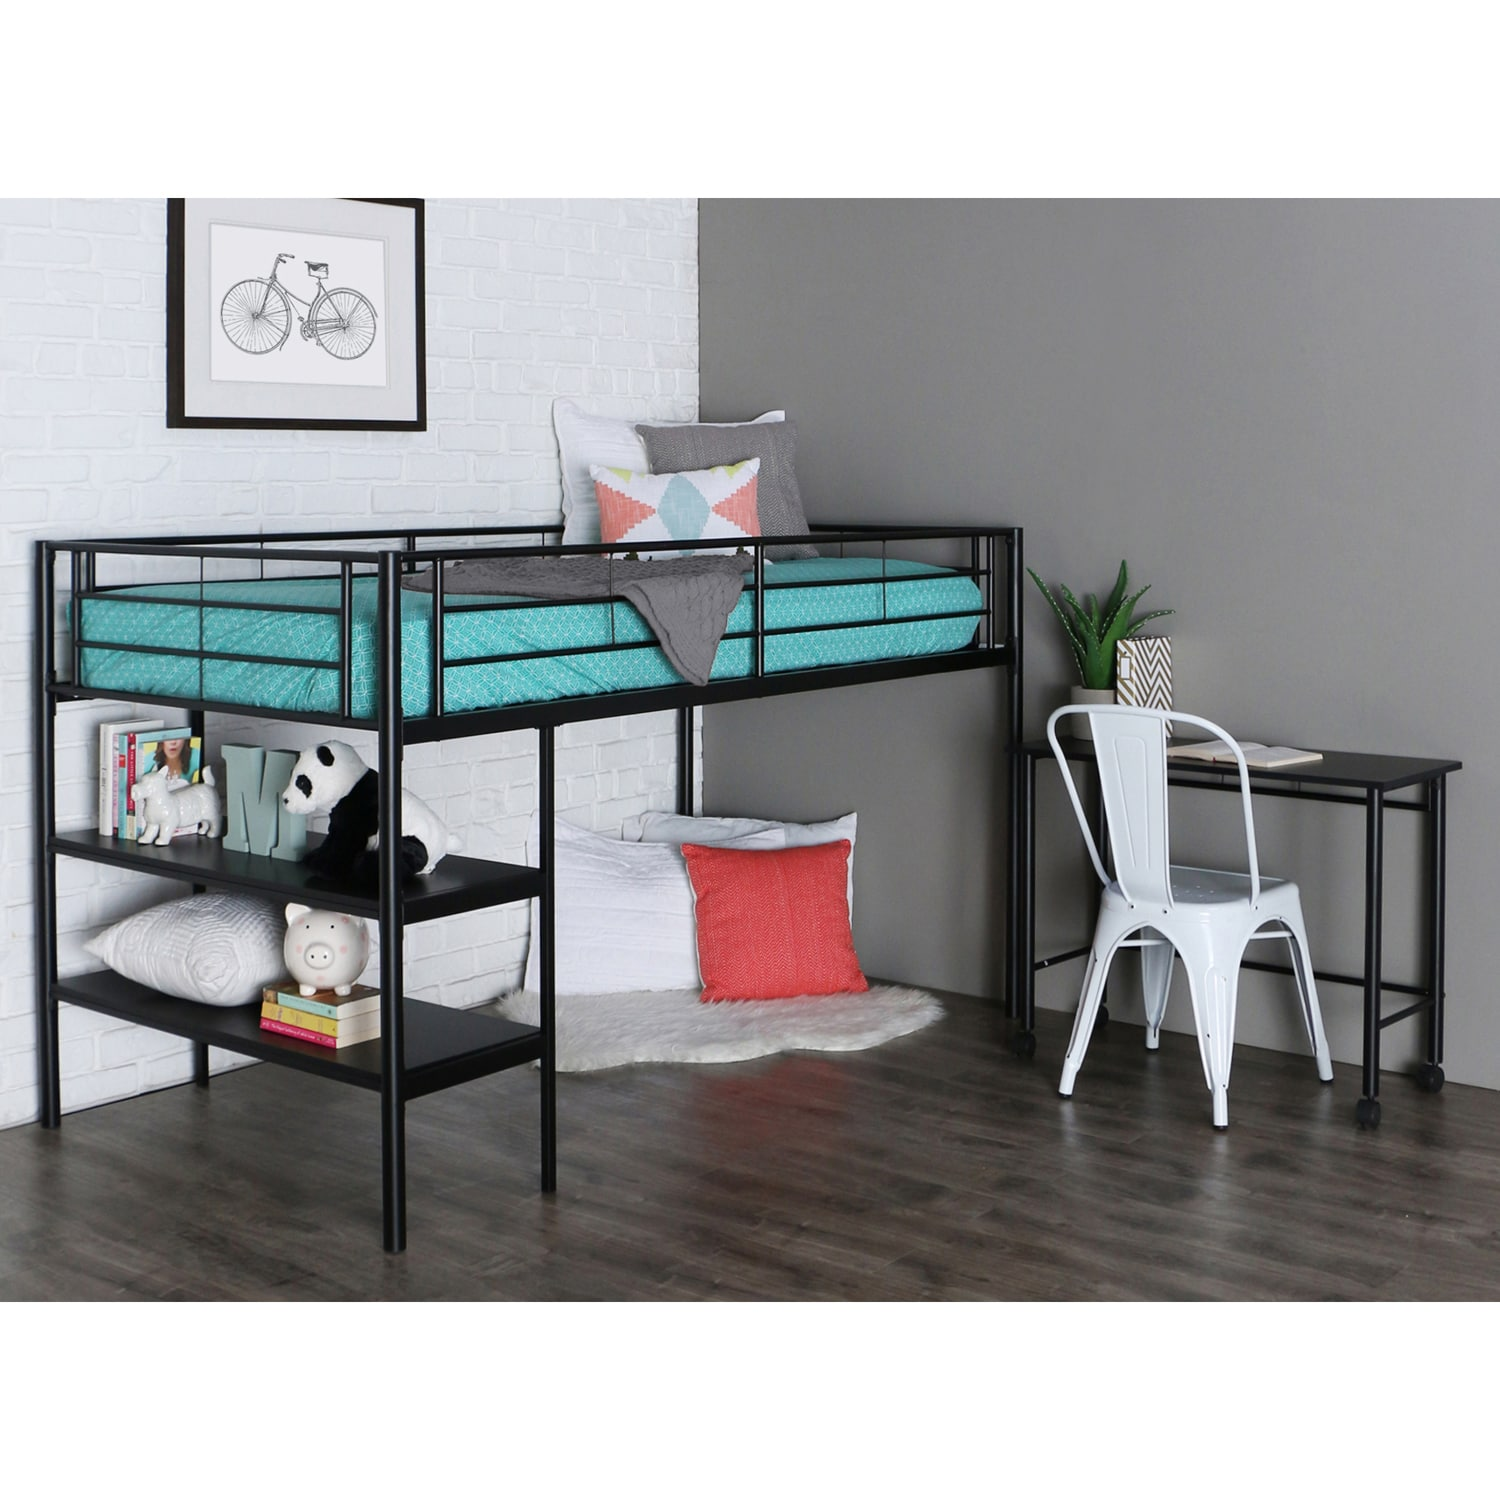 Mobby loft bed with stairs  Premium Metal Black Twin Low Loft Bed With Desk  Black twins Low